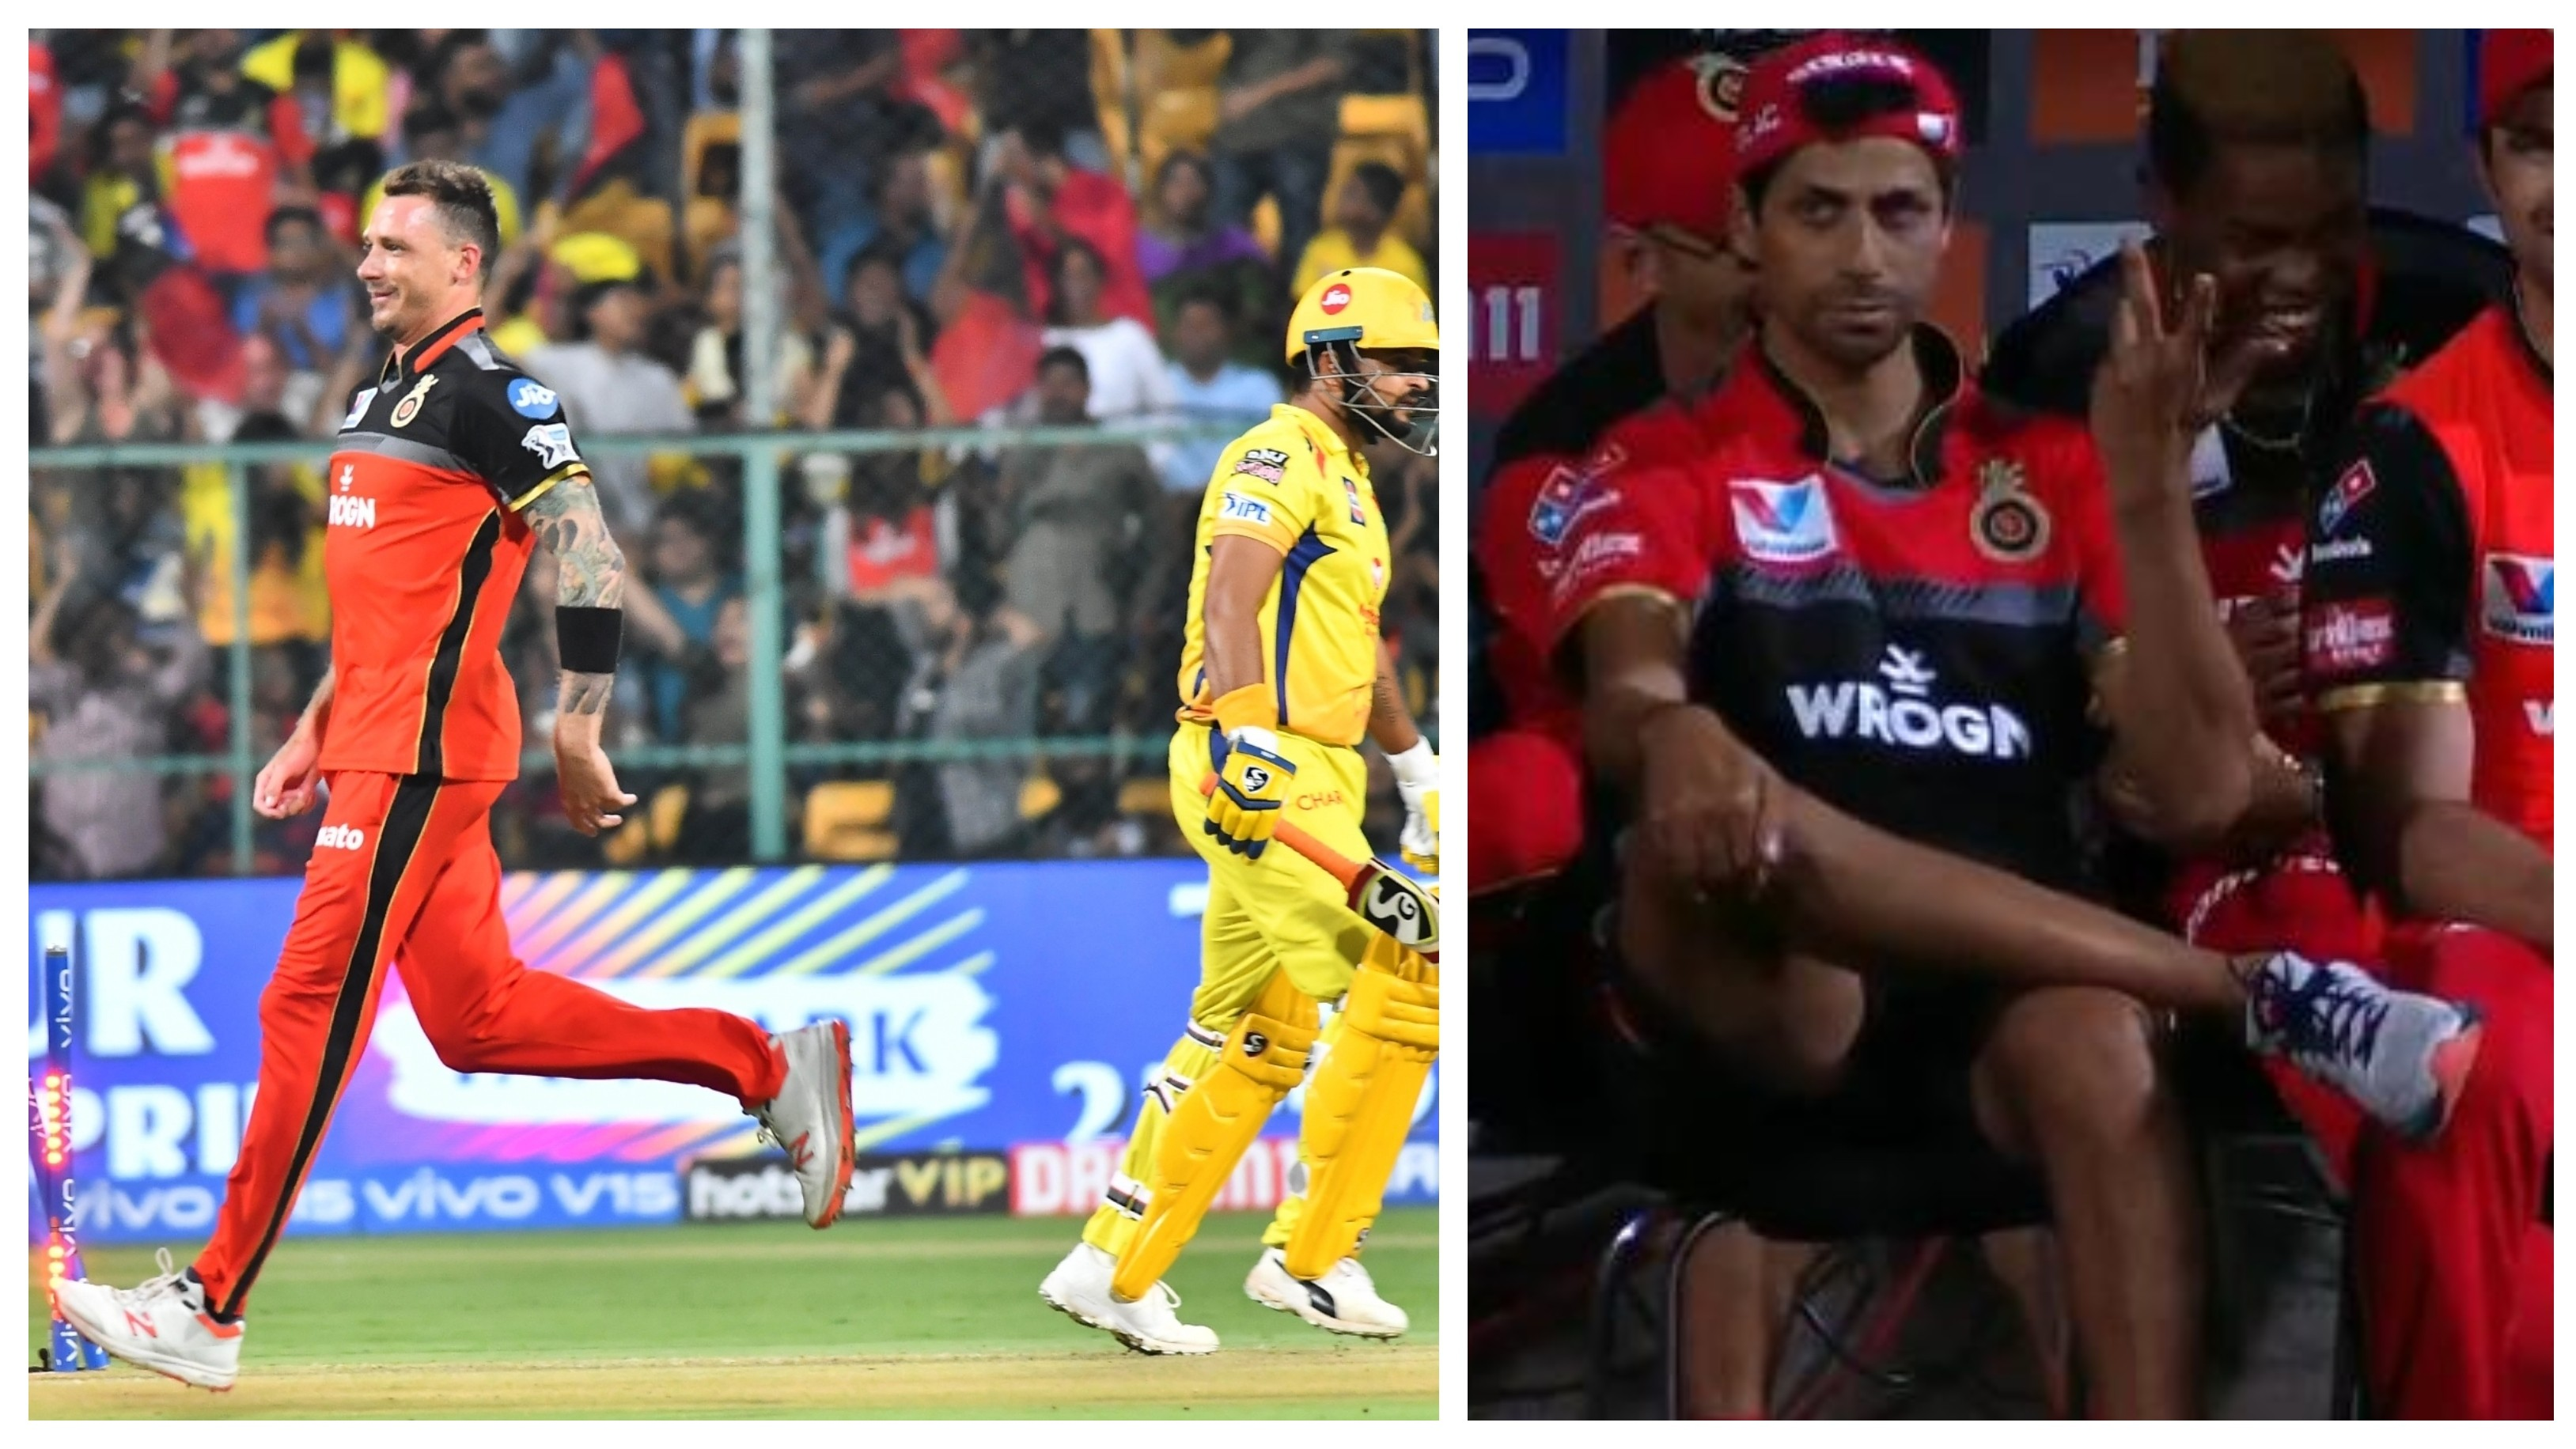 IPL 2019: WATCH – Nehra reacts in awe as Steyn rattles Raina's stumps with an inch-perfect yorker